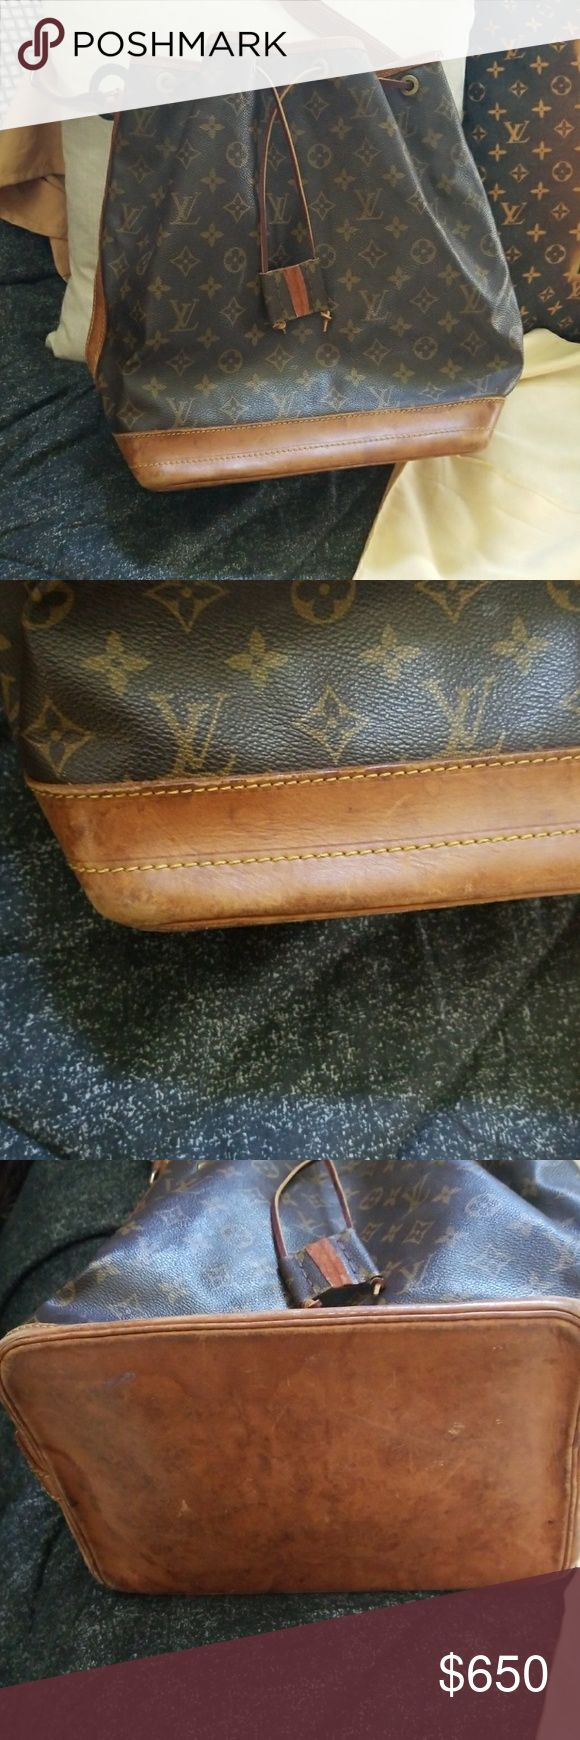 Gm noe authentic Louis vuition, vintage bag some water stains price negotiable Bags Shoulder Bags